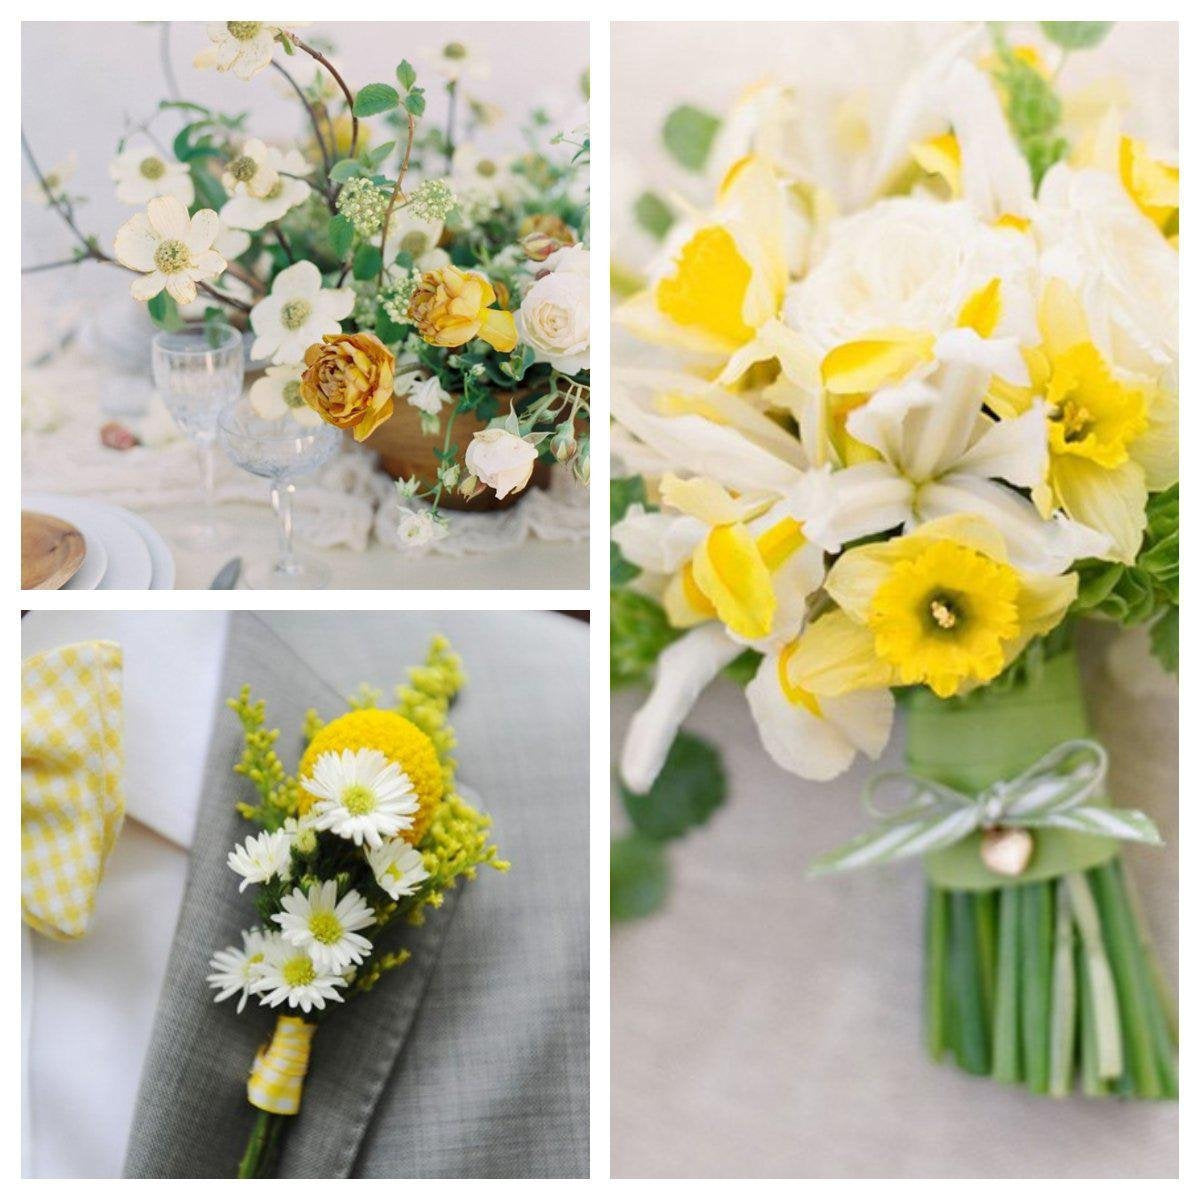 How to Use the 2021 Pantone Colors of the Year (Ultimate Gray and Illuminating Yellow) at Your Wedding-Koyal Wholesale